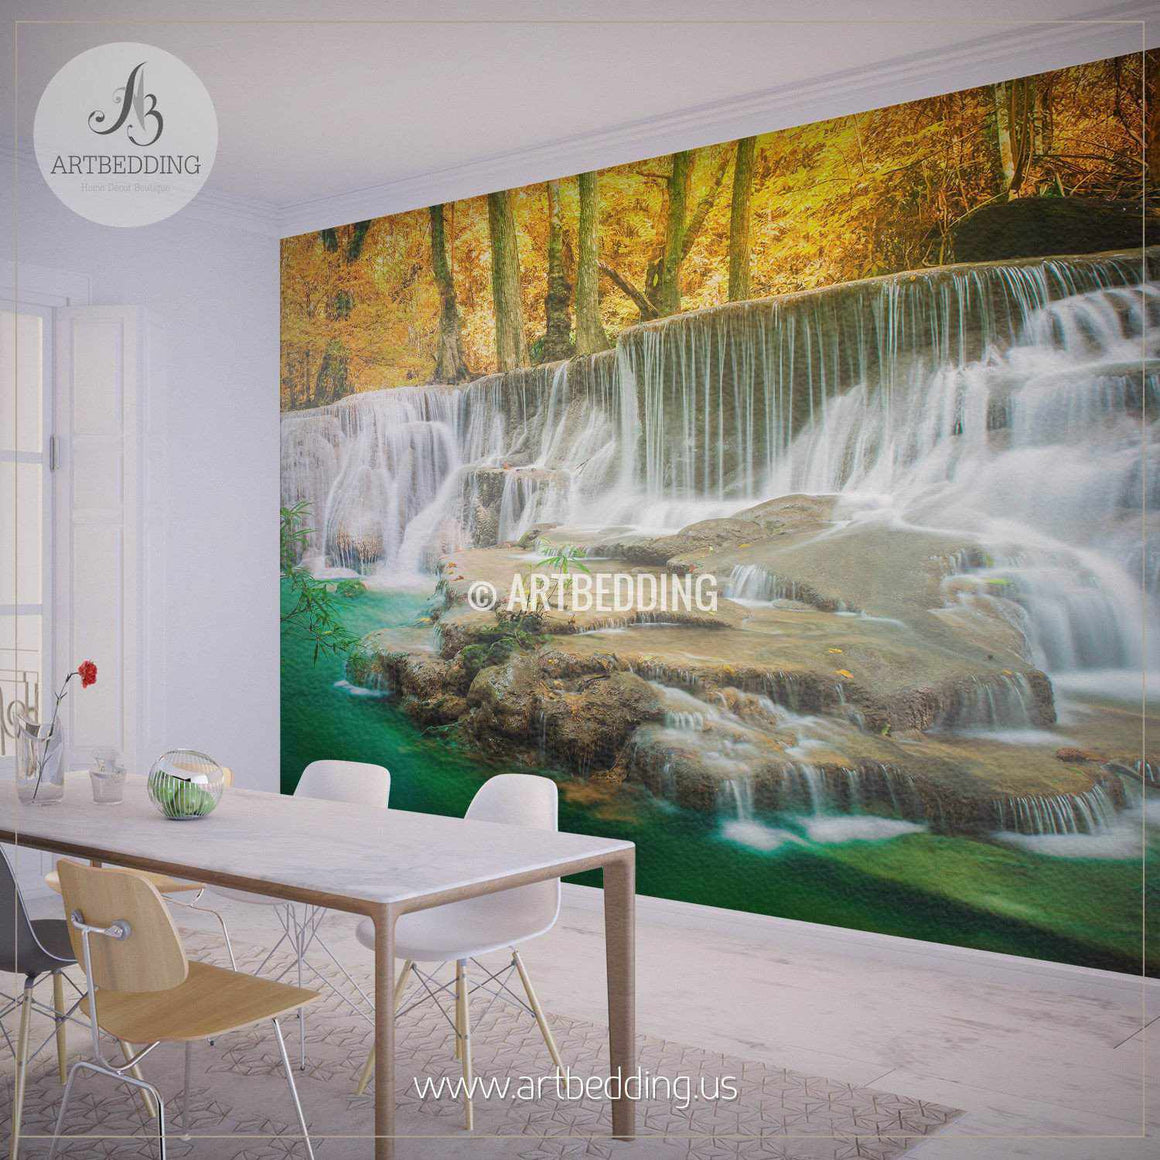 Waterfalls Springtime Wall Mural, Self Adhesive Peel & Stick Photo Mural, Nature Photo mural home decor wall mural